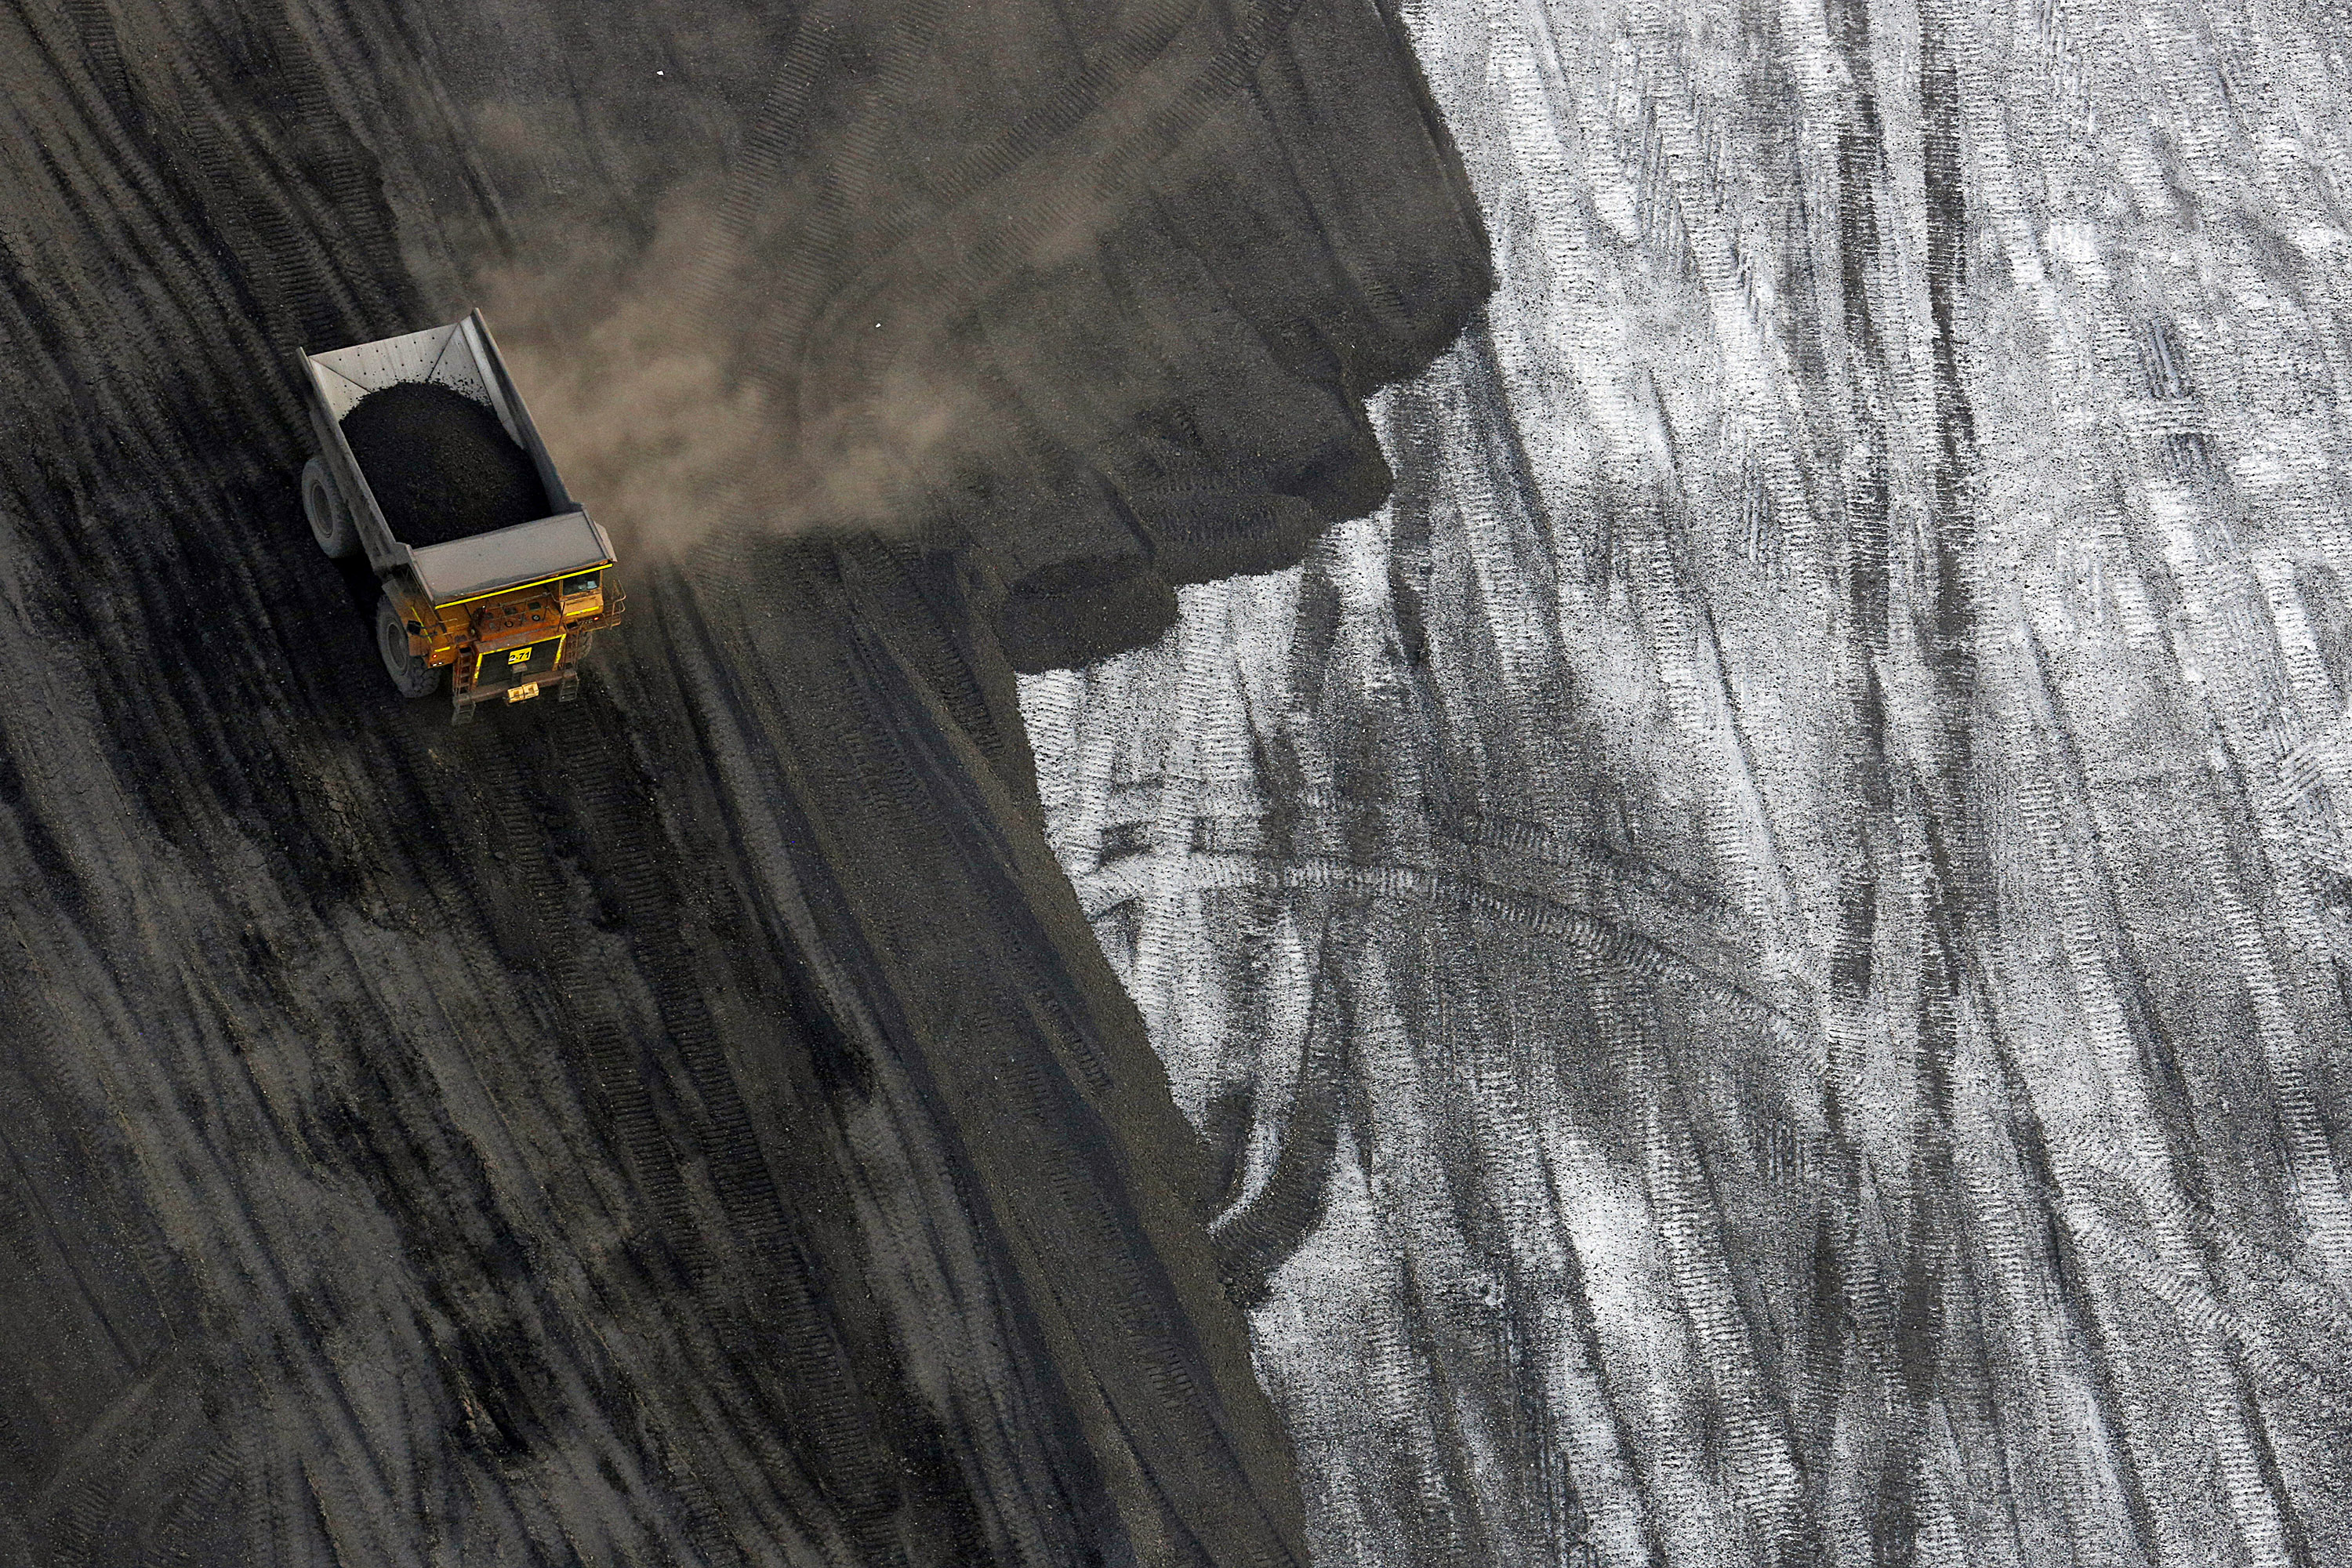 A dump truck moves coal in this aerial photograph taken above the Peabody Energy Corp. Francisco mine in Francisco, Indiana, U.S., on Tuesday, April 5, 2016. Peabody filed for bankruptcy on Wednesday, the most powerful convulsion yet in an industry that's still waiting for the coal market to bottom out. Photographer: Luke Sharrett/Bloomberg via Getty Images